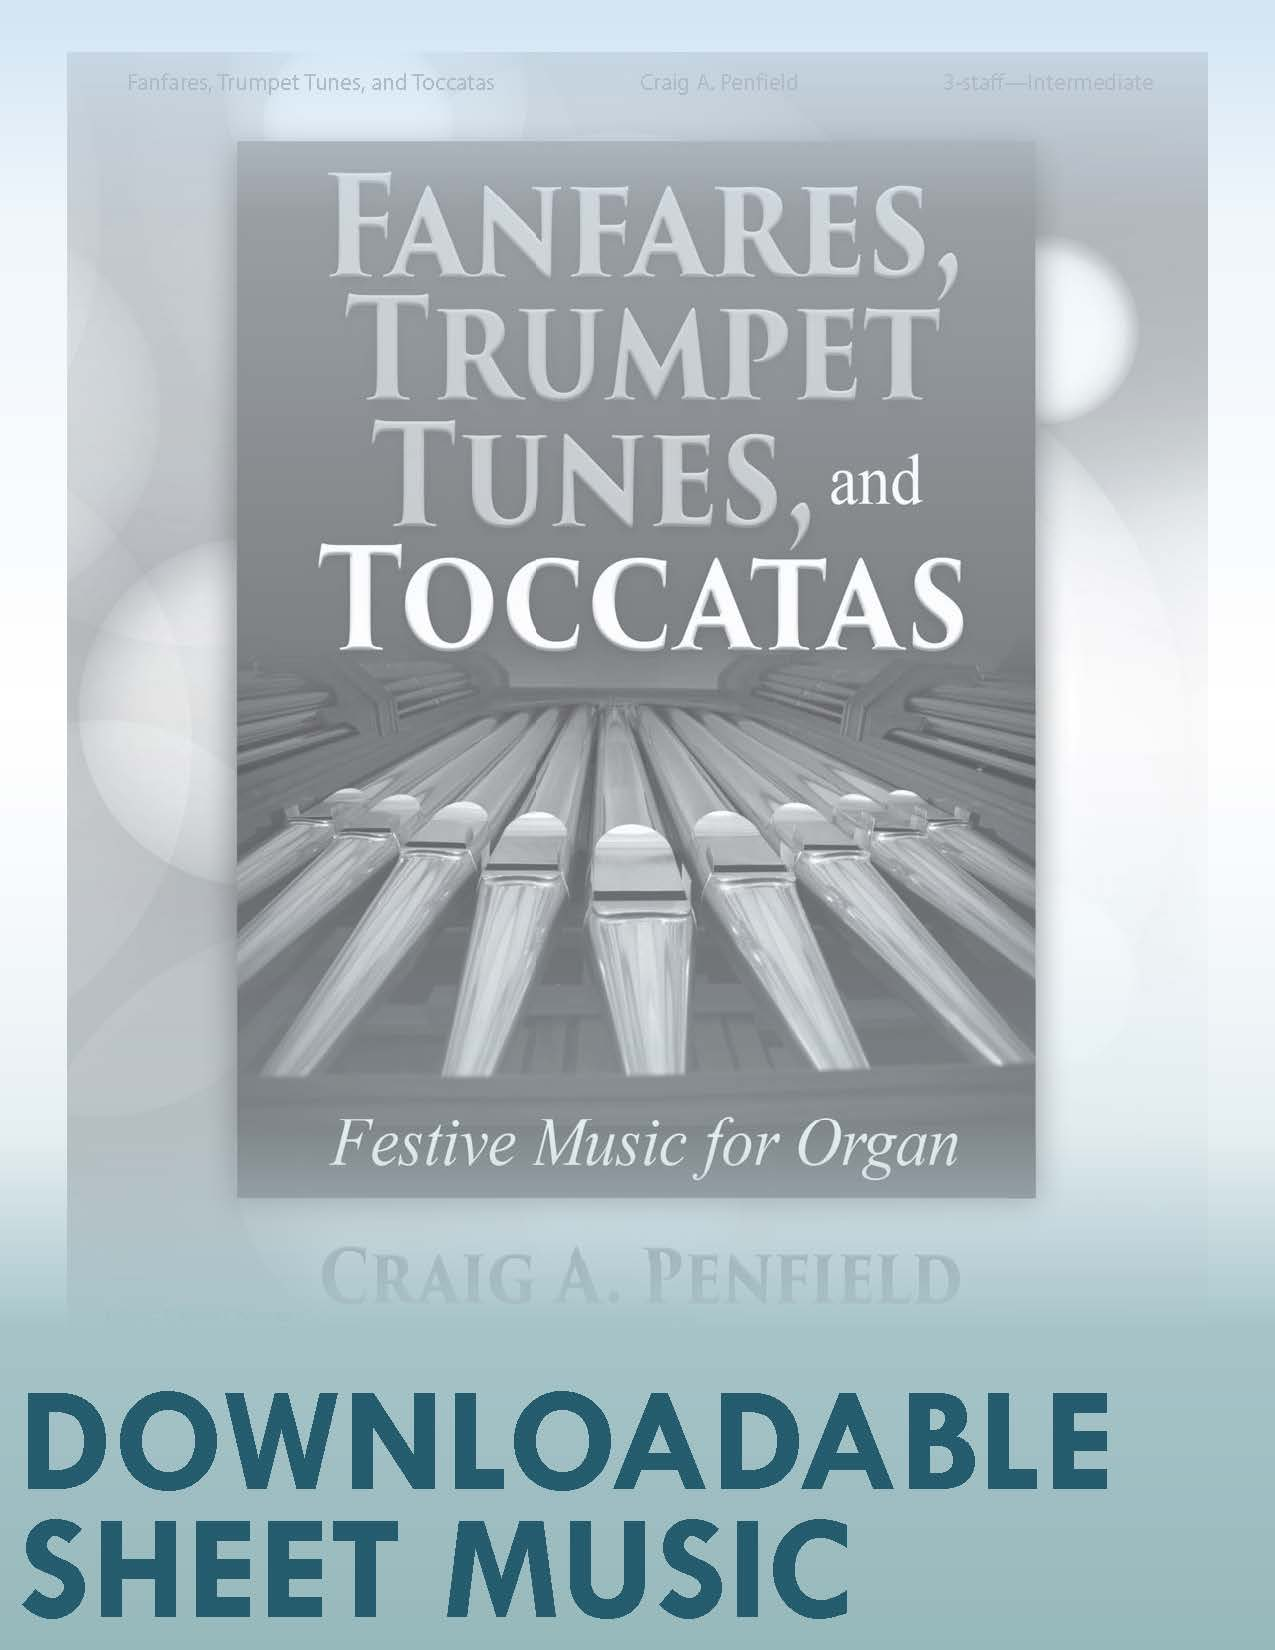 Fanfares, Trumpet Tunes, and Toccatas - Digital Download